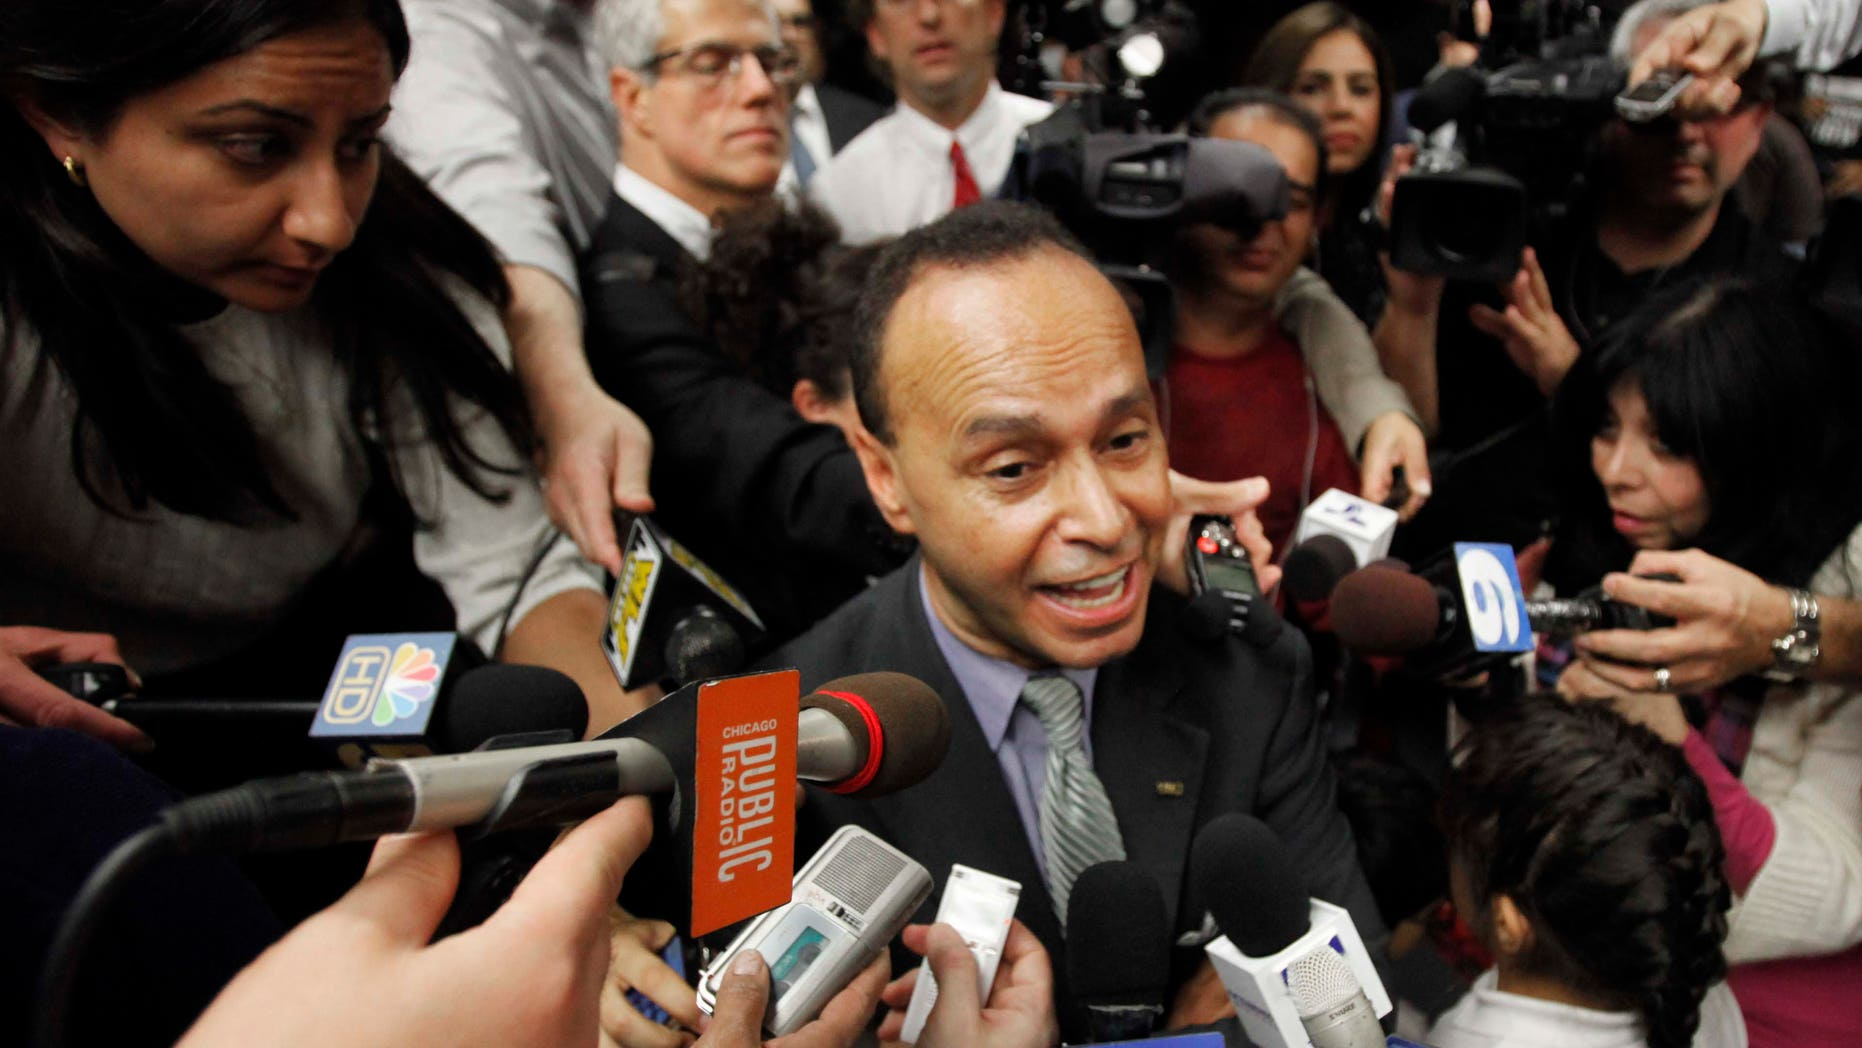 U.S. Rep. Luis Gutierrez, D-Ill., addresses a crowd where he announced he would not run for mayor of Chicago during an event on the University of Illinois-Chicago campus Thursday, Oct. 14, 2010 in Chicago. (AP Photo/Charles Rex Arbogast)